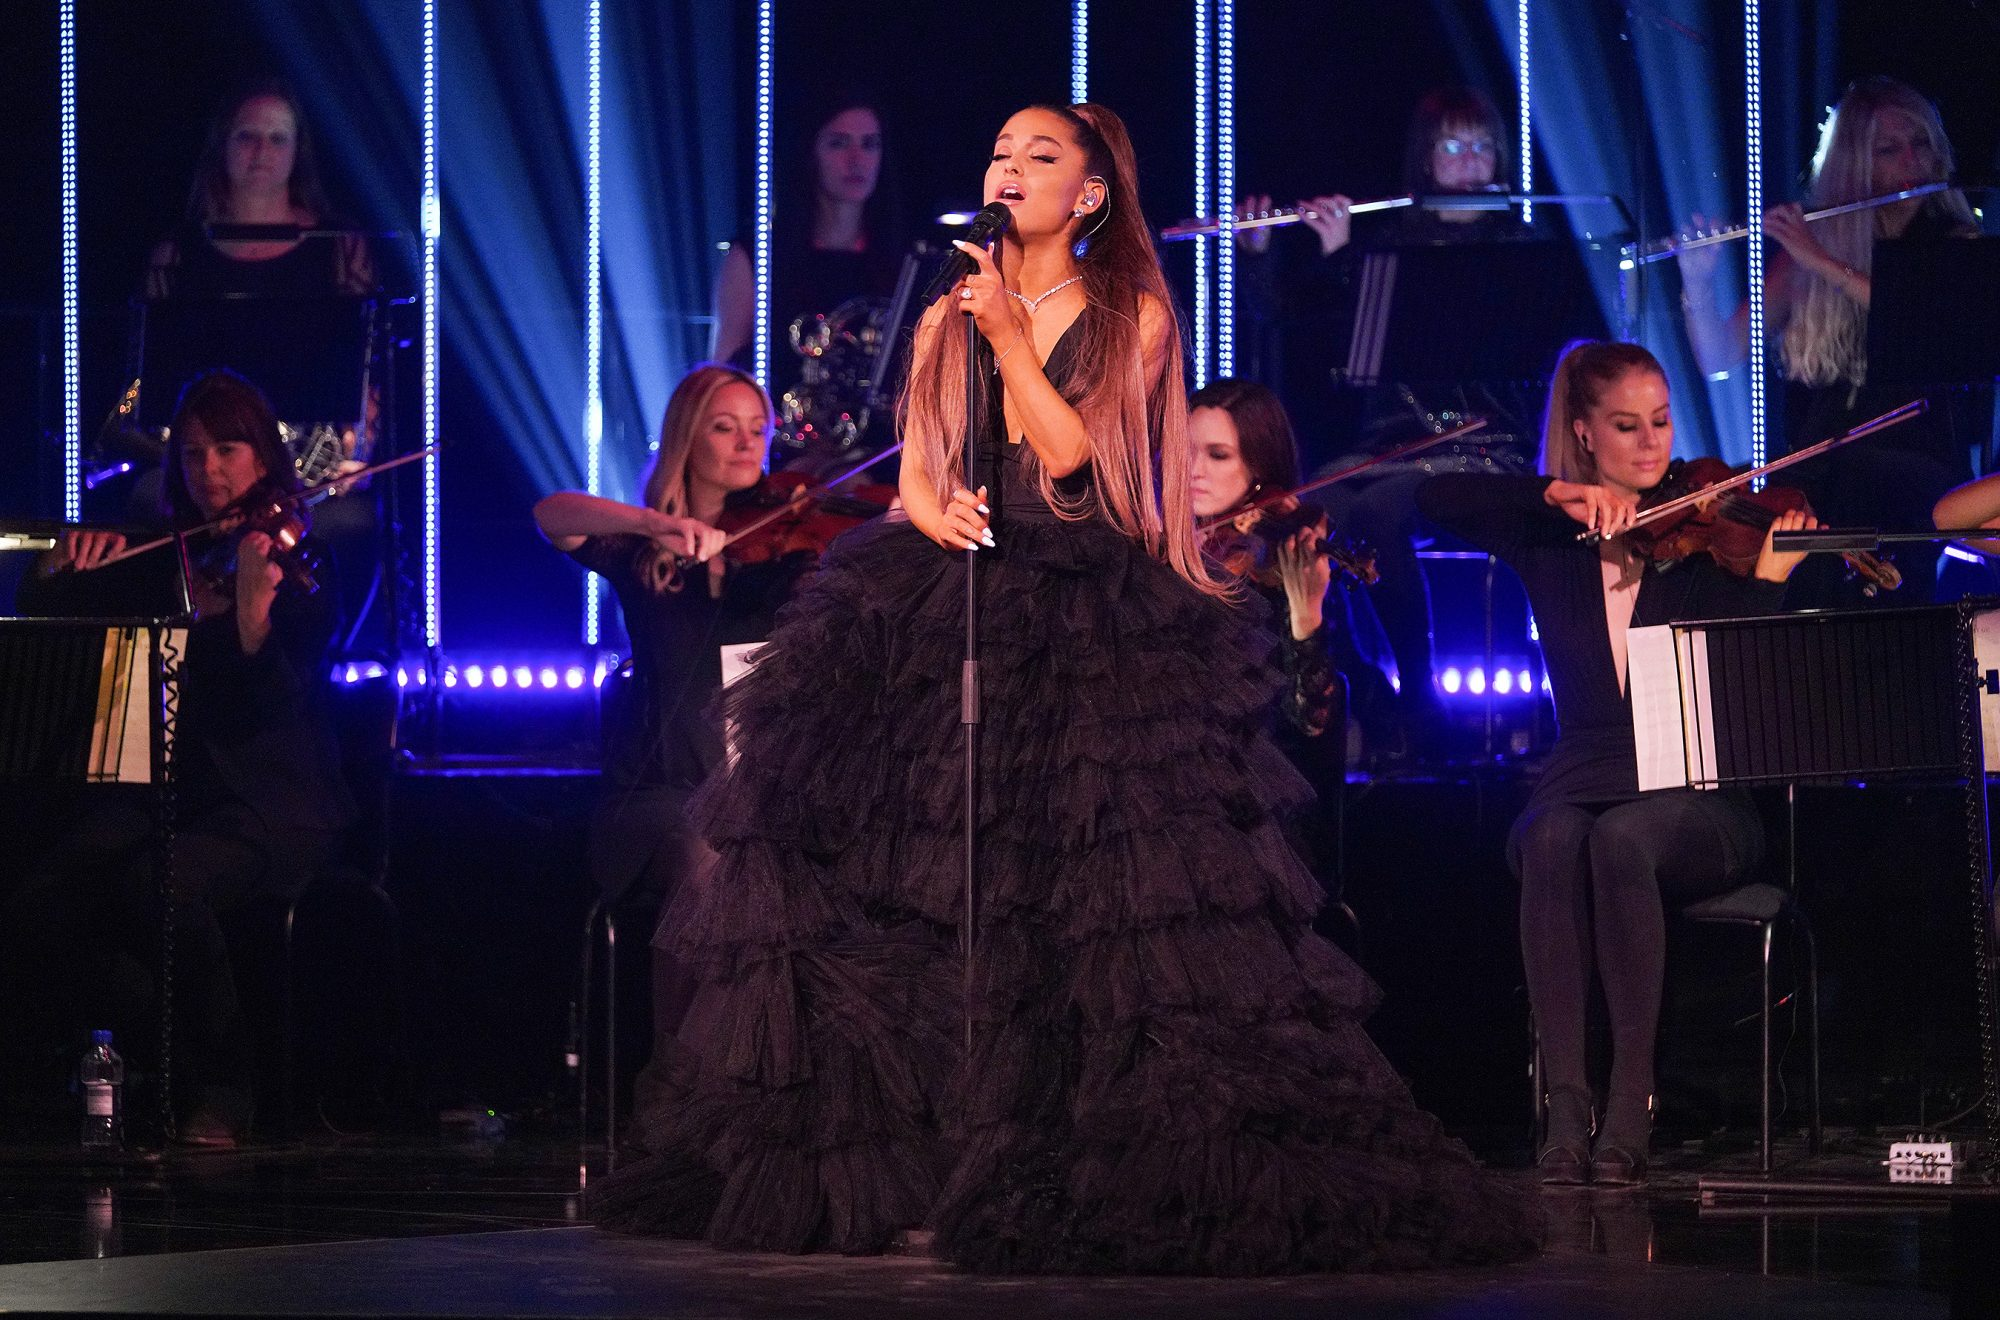 ariana grande biggest bombshells from bbc specialCredit: Courtesy BBC